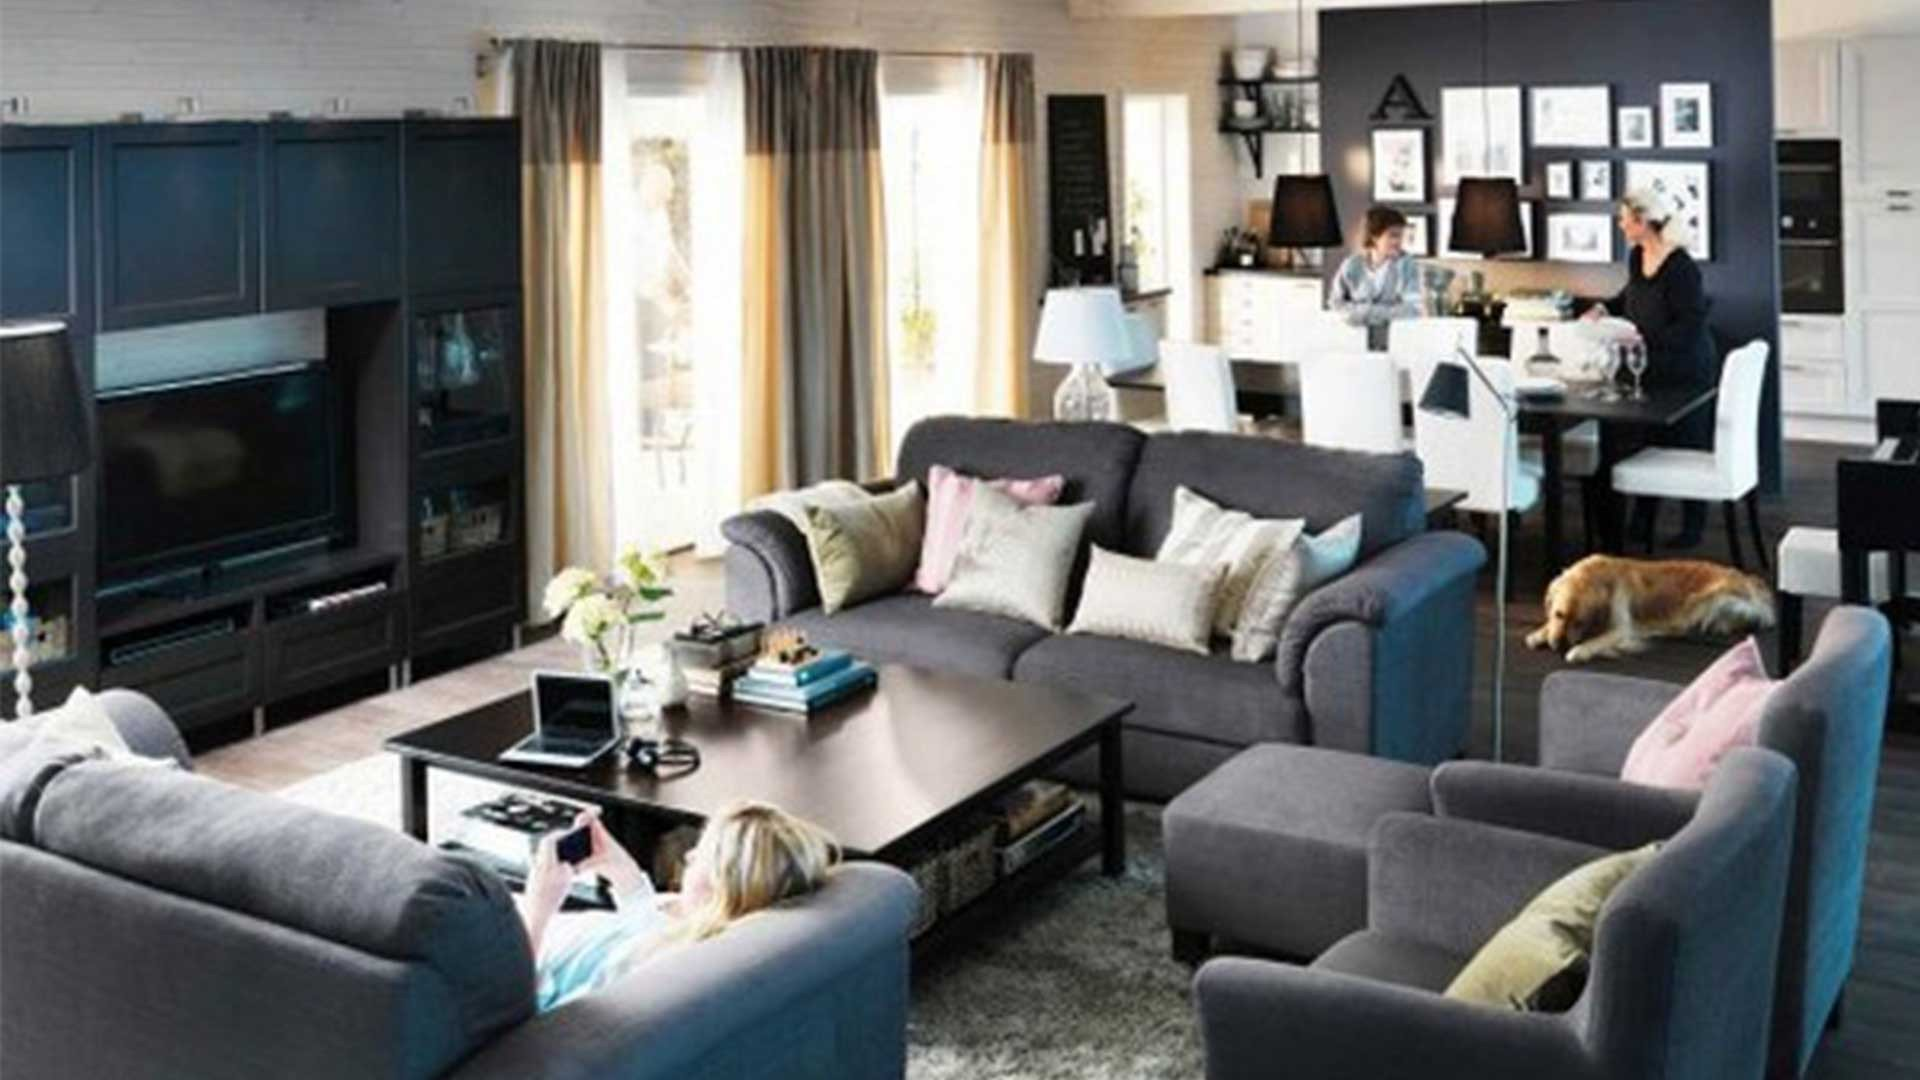 Uncluttered Small Living Room Ideas Lovely Small Space Interior Design Ideas Uncluttered Small Living Room Ideas Ikea Small Living Room